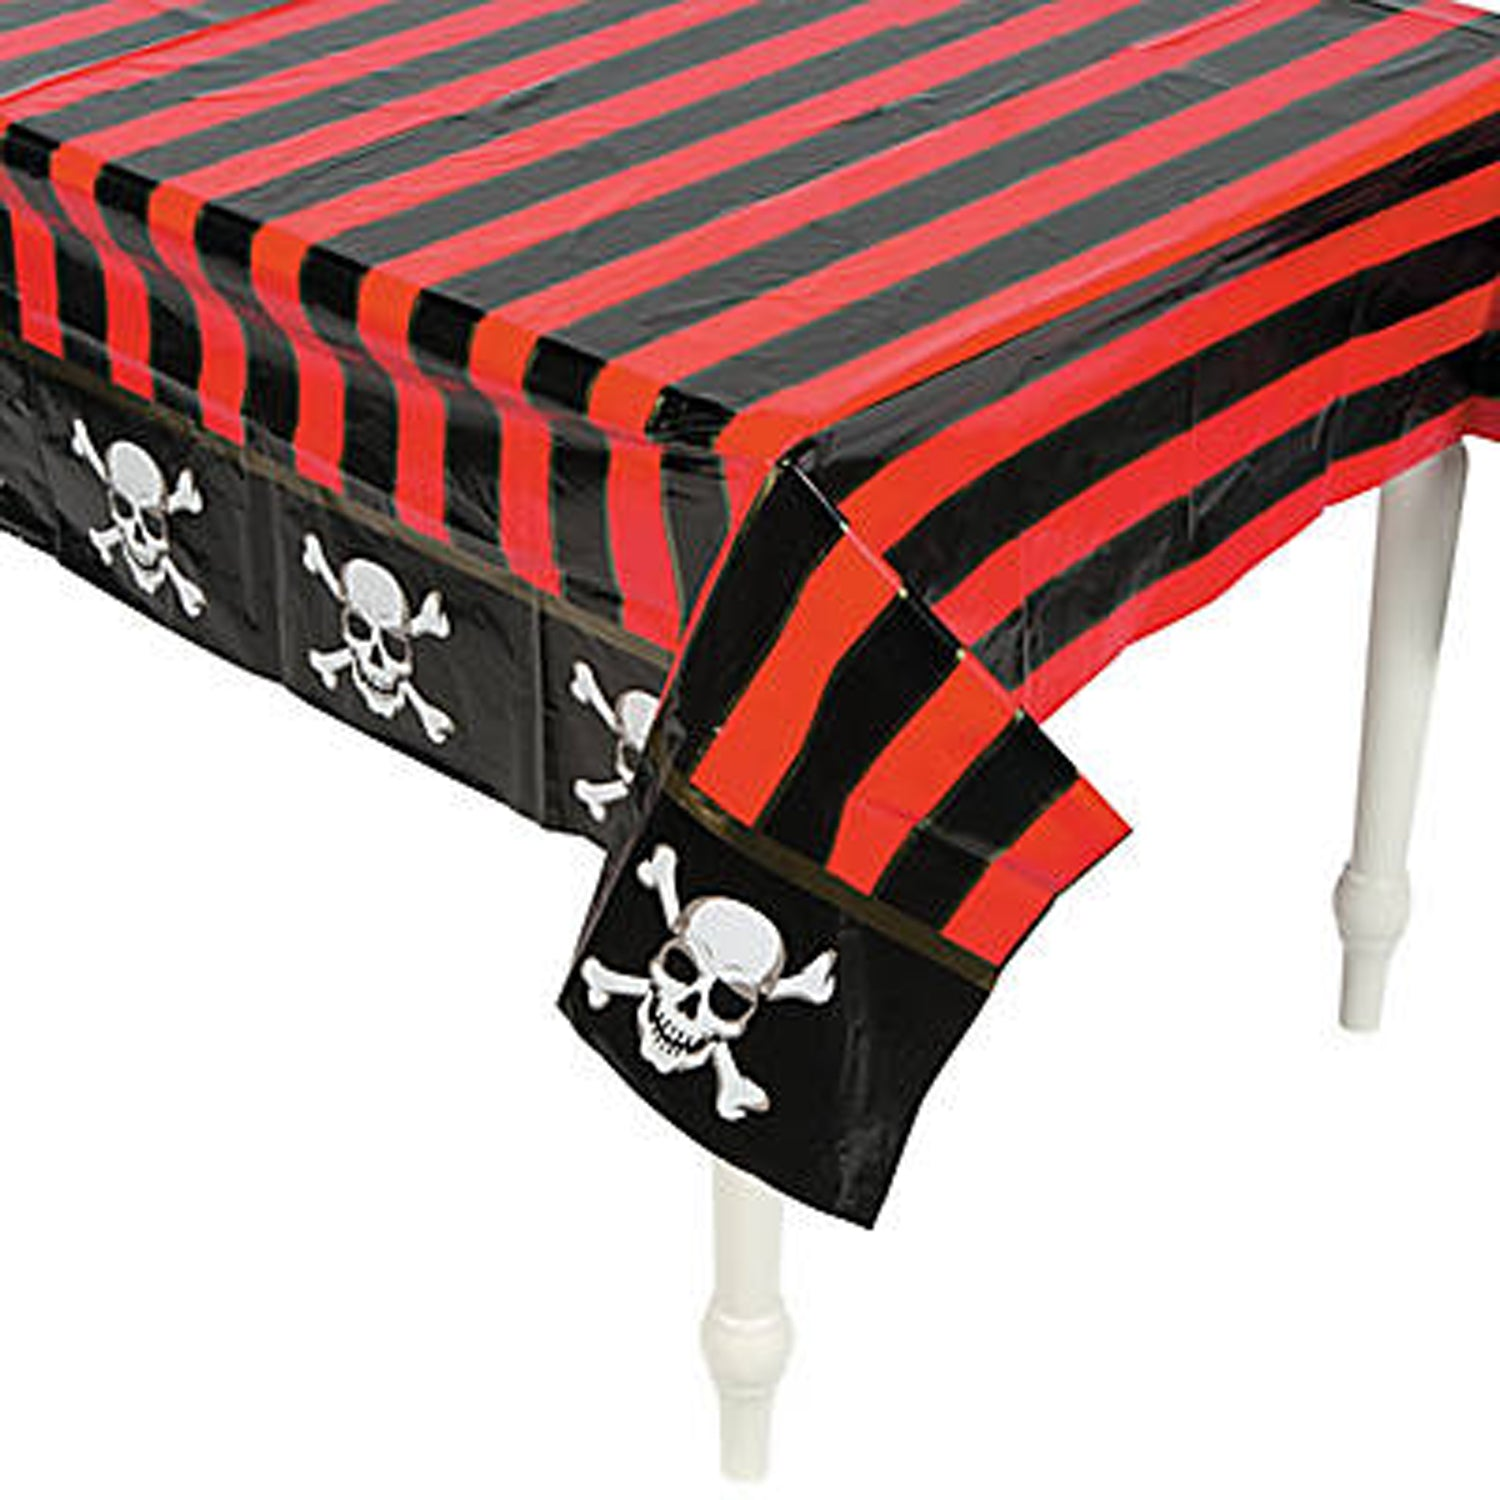 Pirate Party Red Stripe Table Cover Tablecloth Plastic Tablecloth